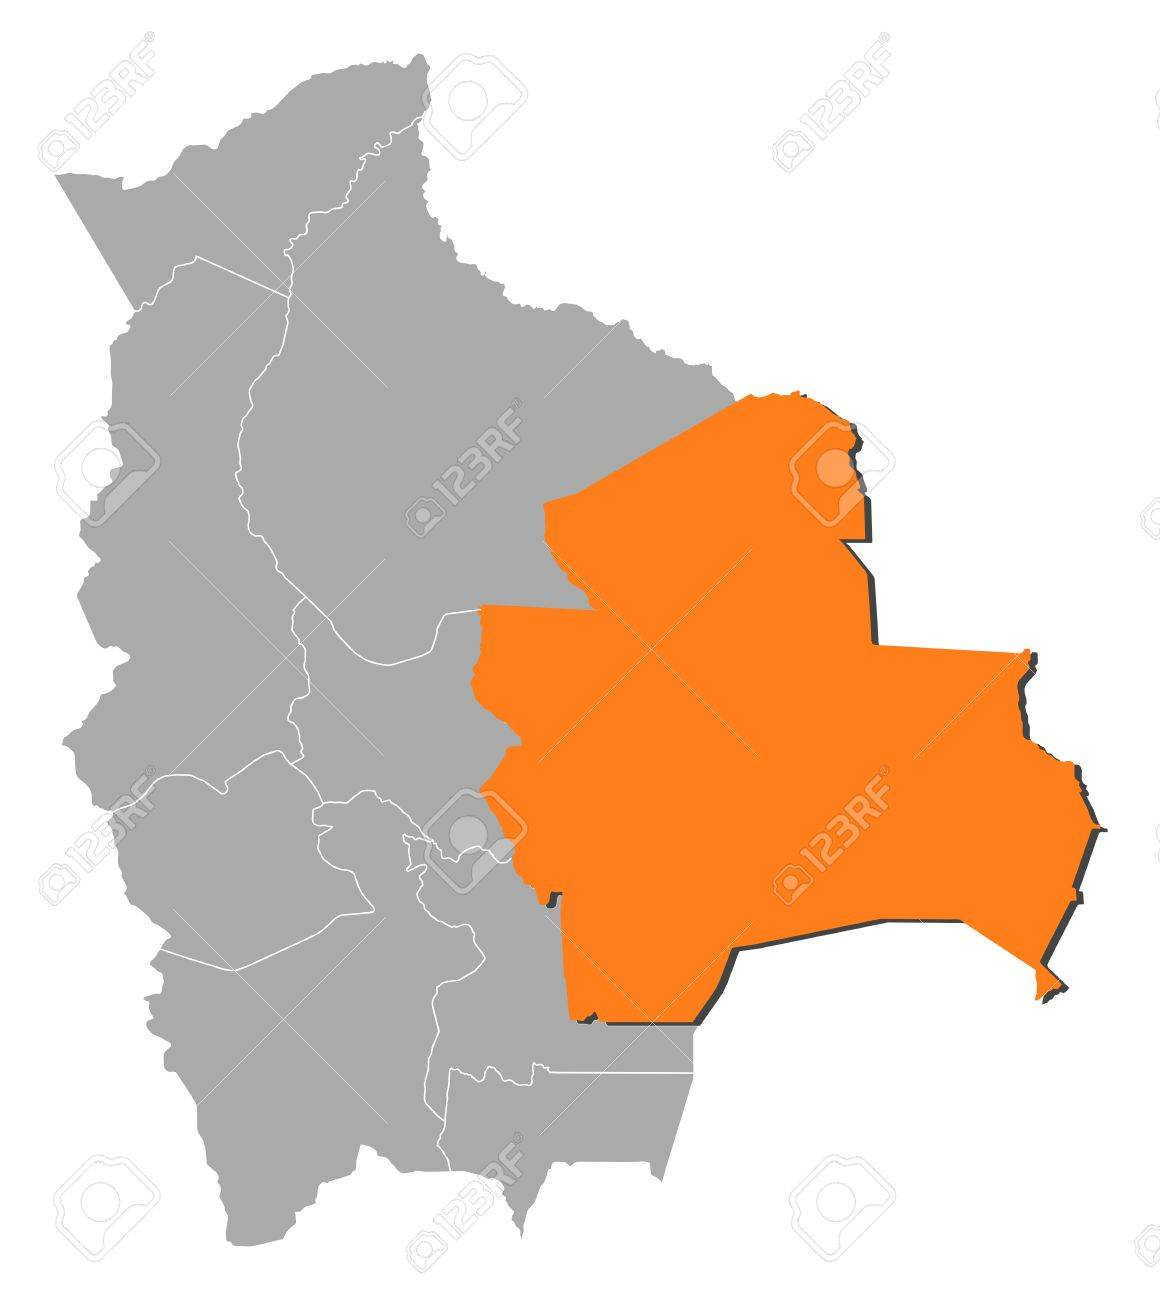 Political Map Of Bolivia With The Several Departments Where Santa